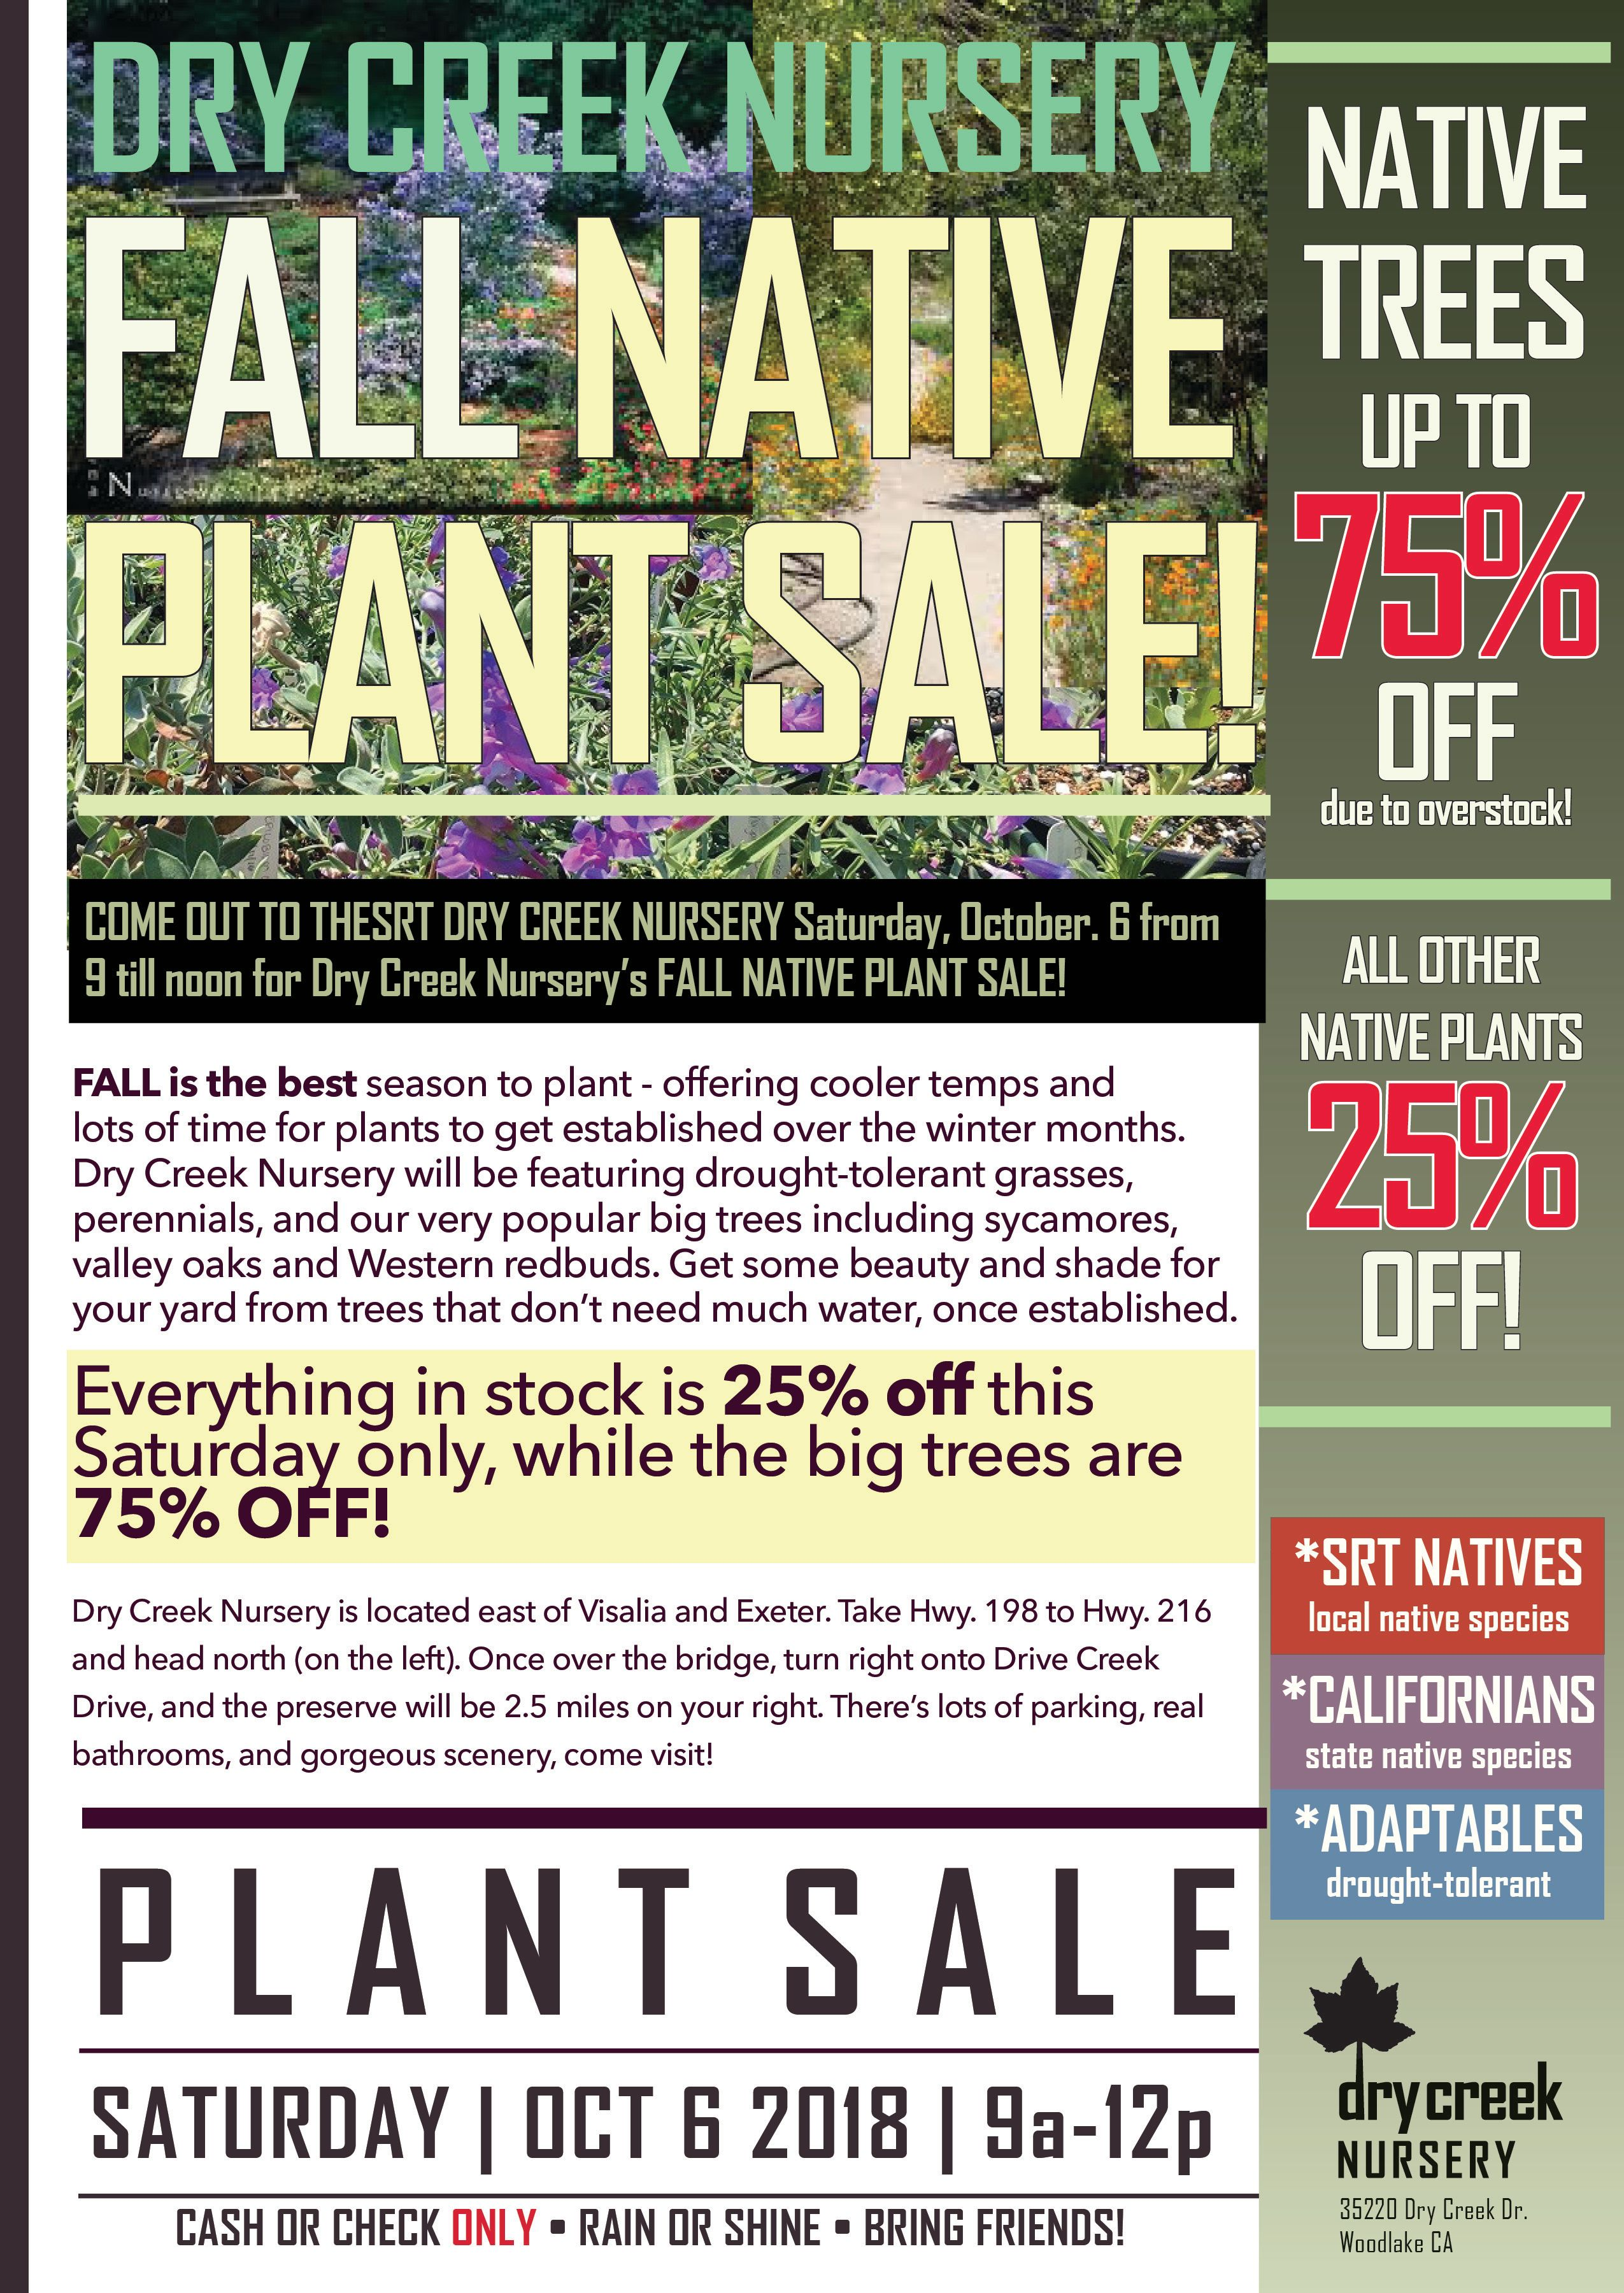 FALL Native Plant SALE at Dry Creek Nursery!